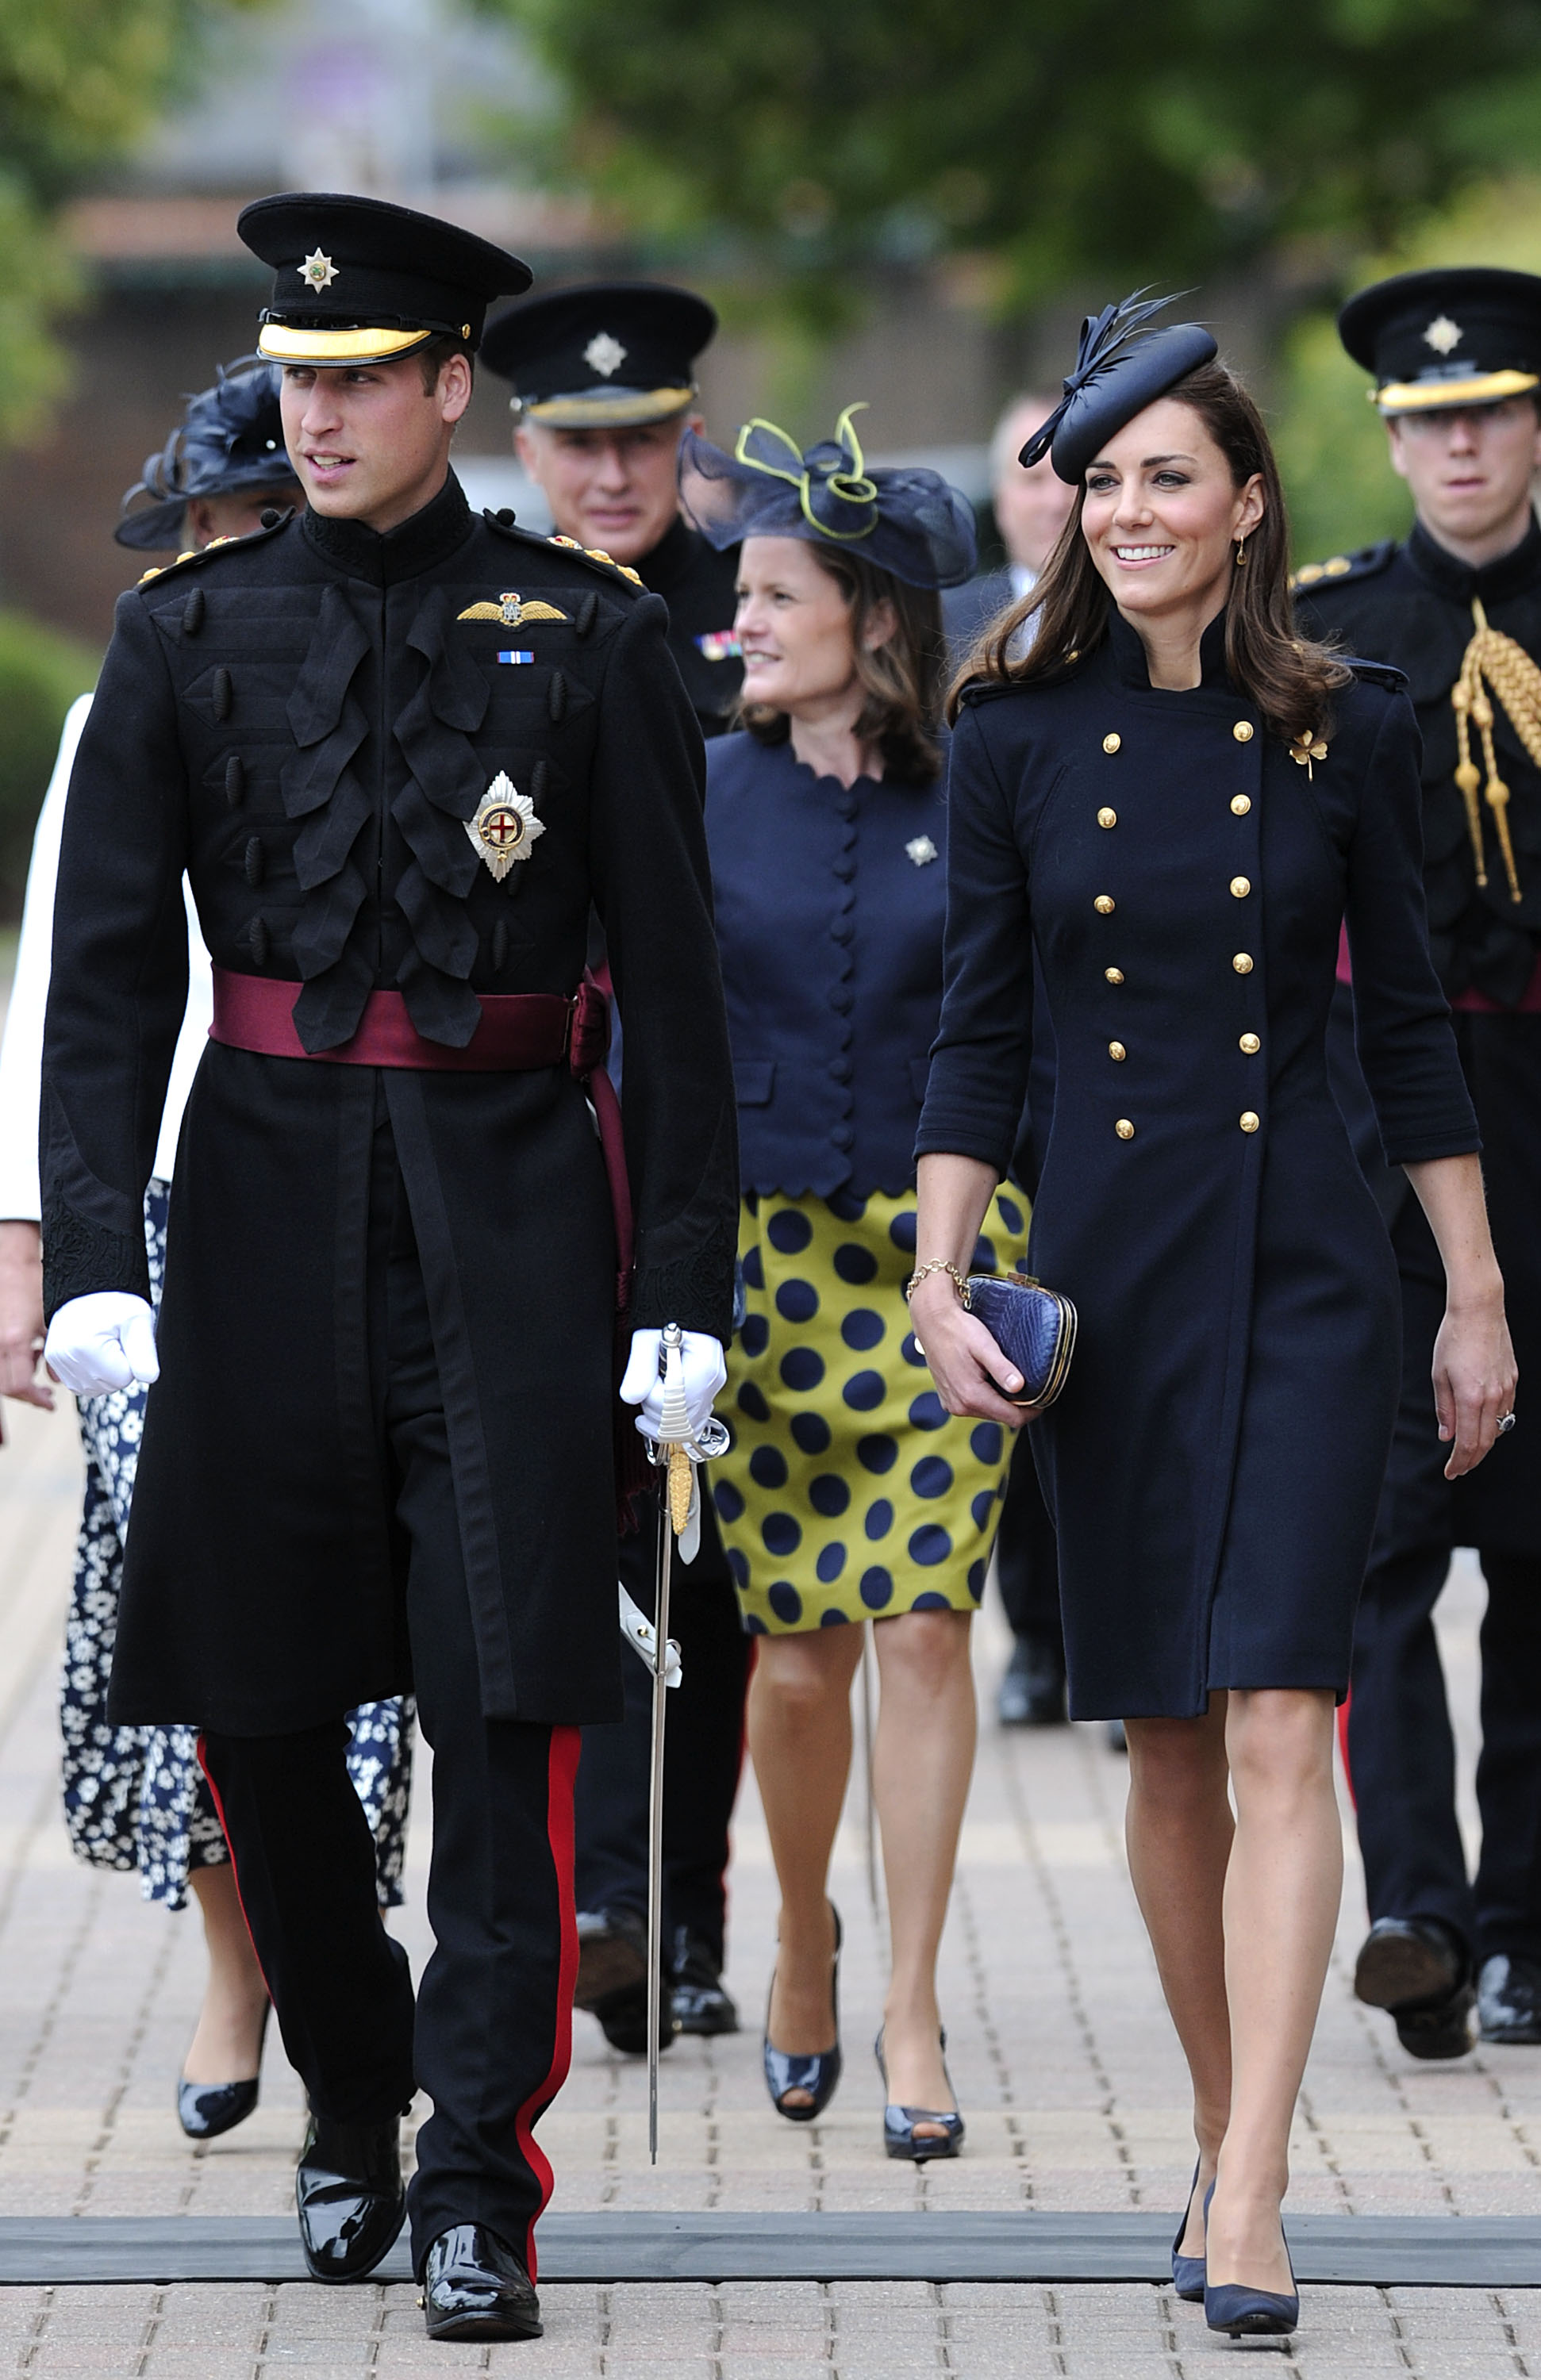 <strong>Fulfilling Her Duty</strong>                                   On a visit to Victoria Barracks in Windsor, England, on June 25, 2011, Middleton suited up in a navy ensemble that matched Prince William's in color and silhouette.